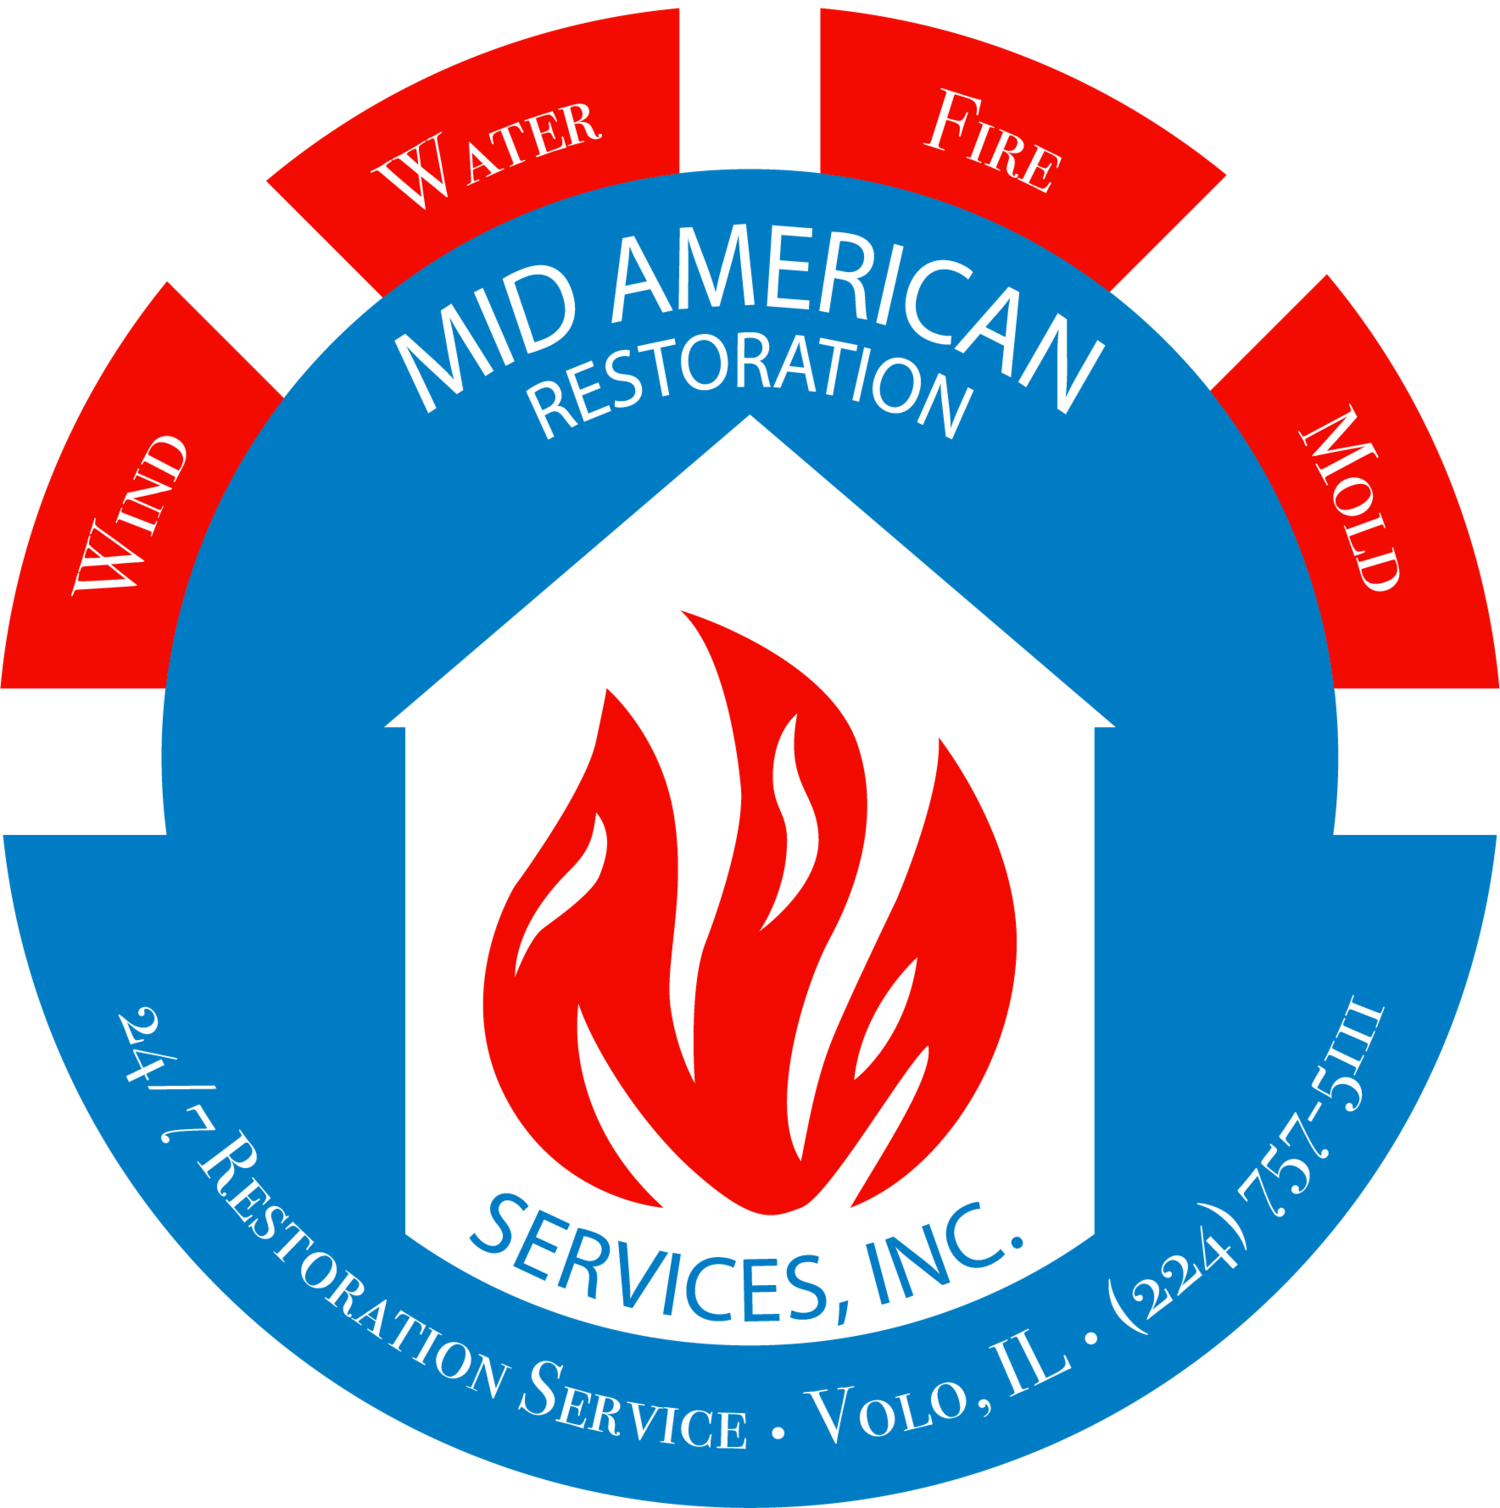 Mid American Restoration Services Inc.